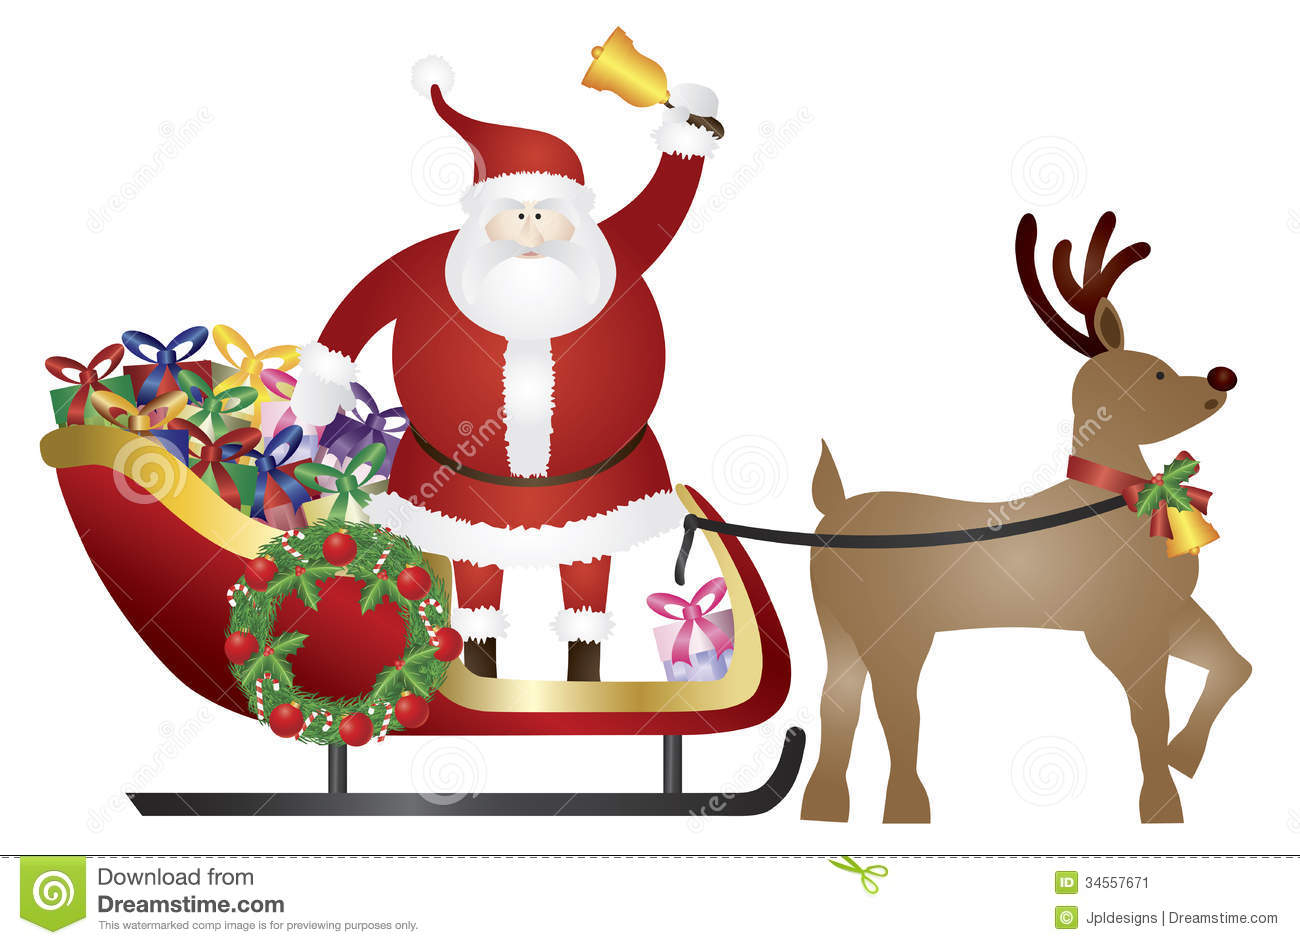 santa claus on reindeer sleigh delivering presents stock image